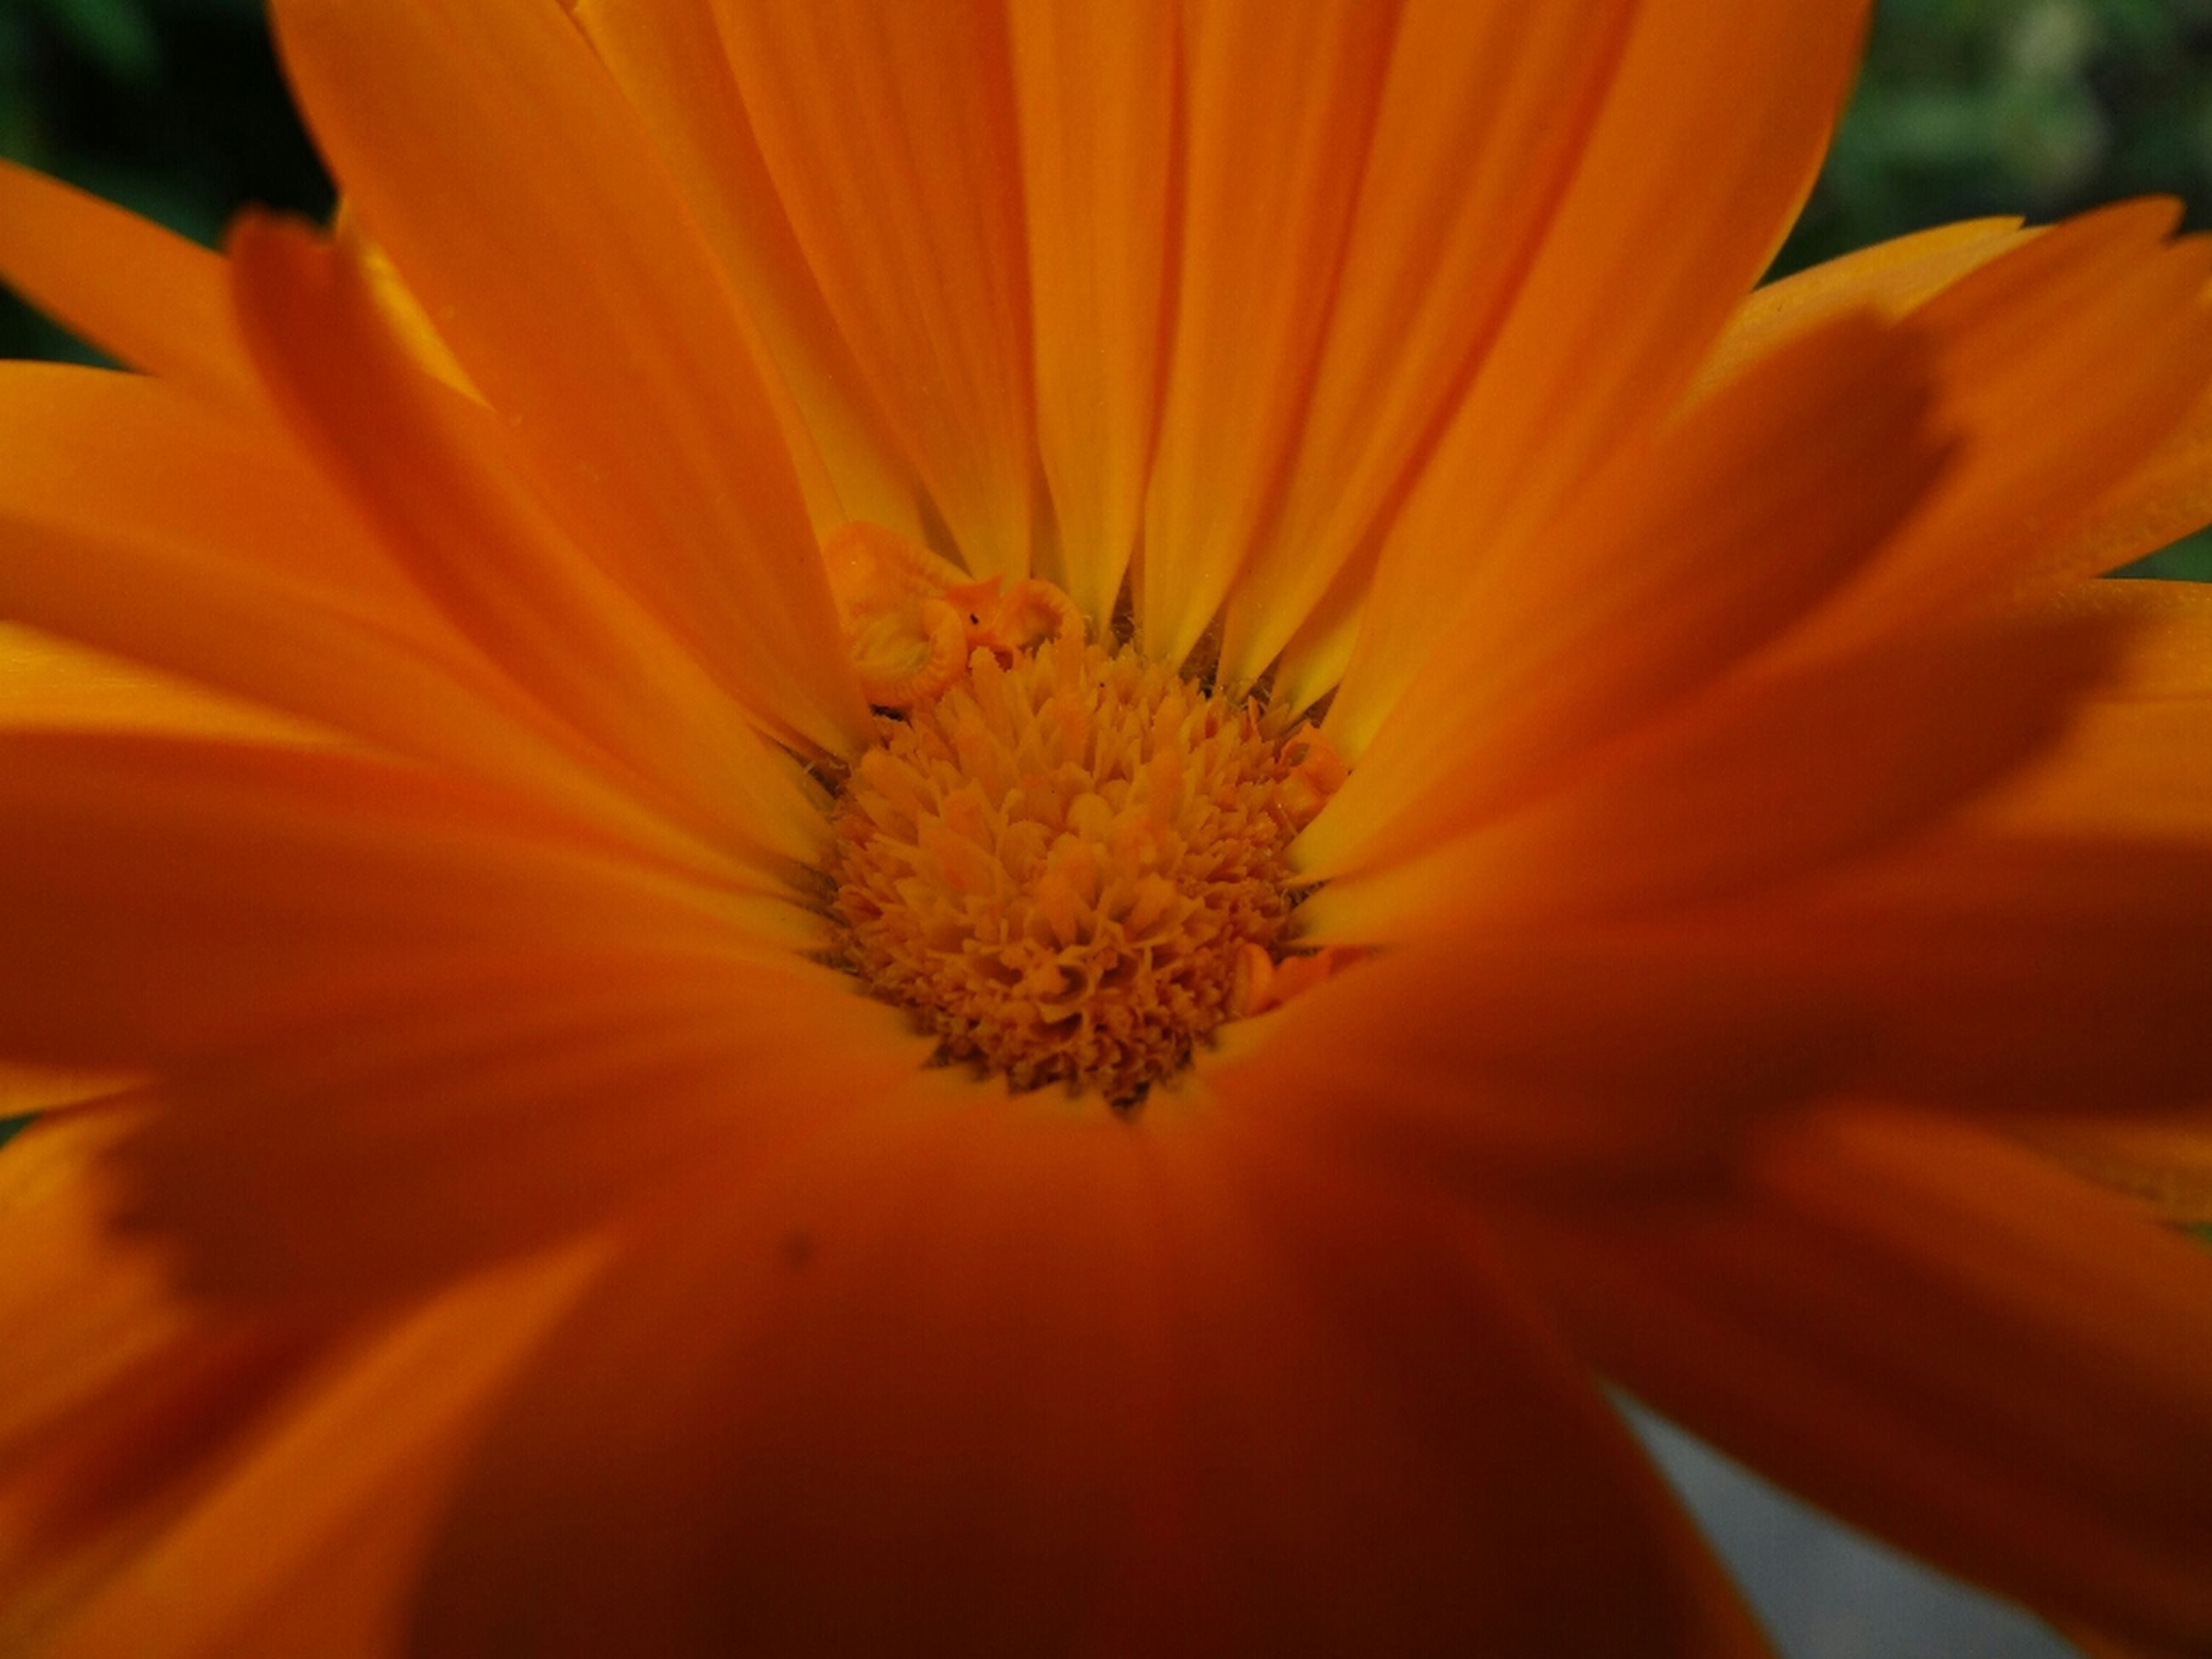 flower, petal, flower head, freshness, fragility, pollen, beauty in nature, close-up, growth, single flower, yellow, nature, orange color, blooming, stamen, focus on foreground, in bloom, macro, plant, selective focus